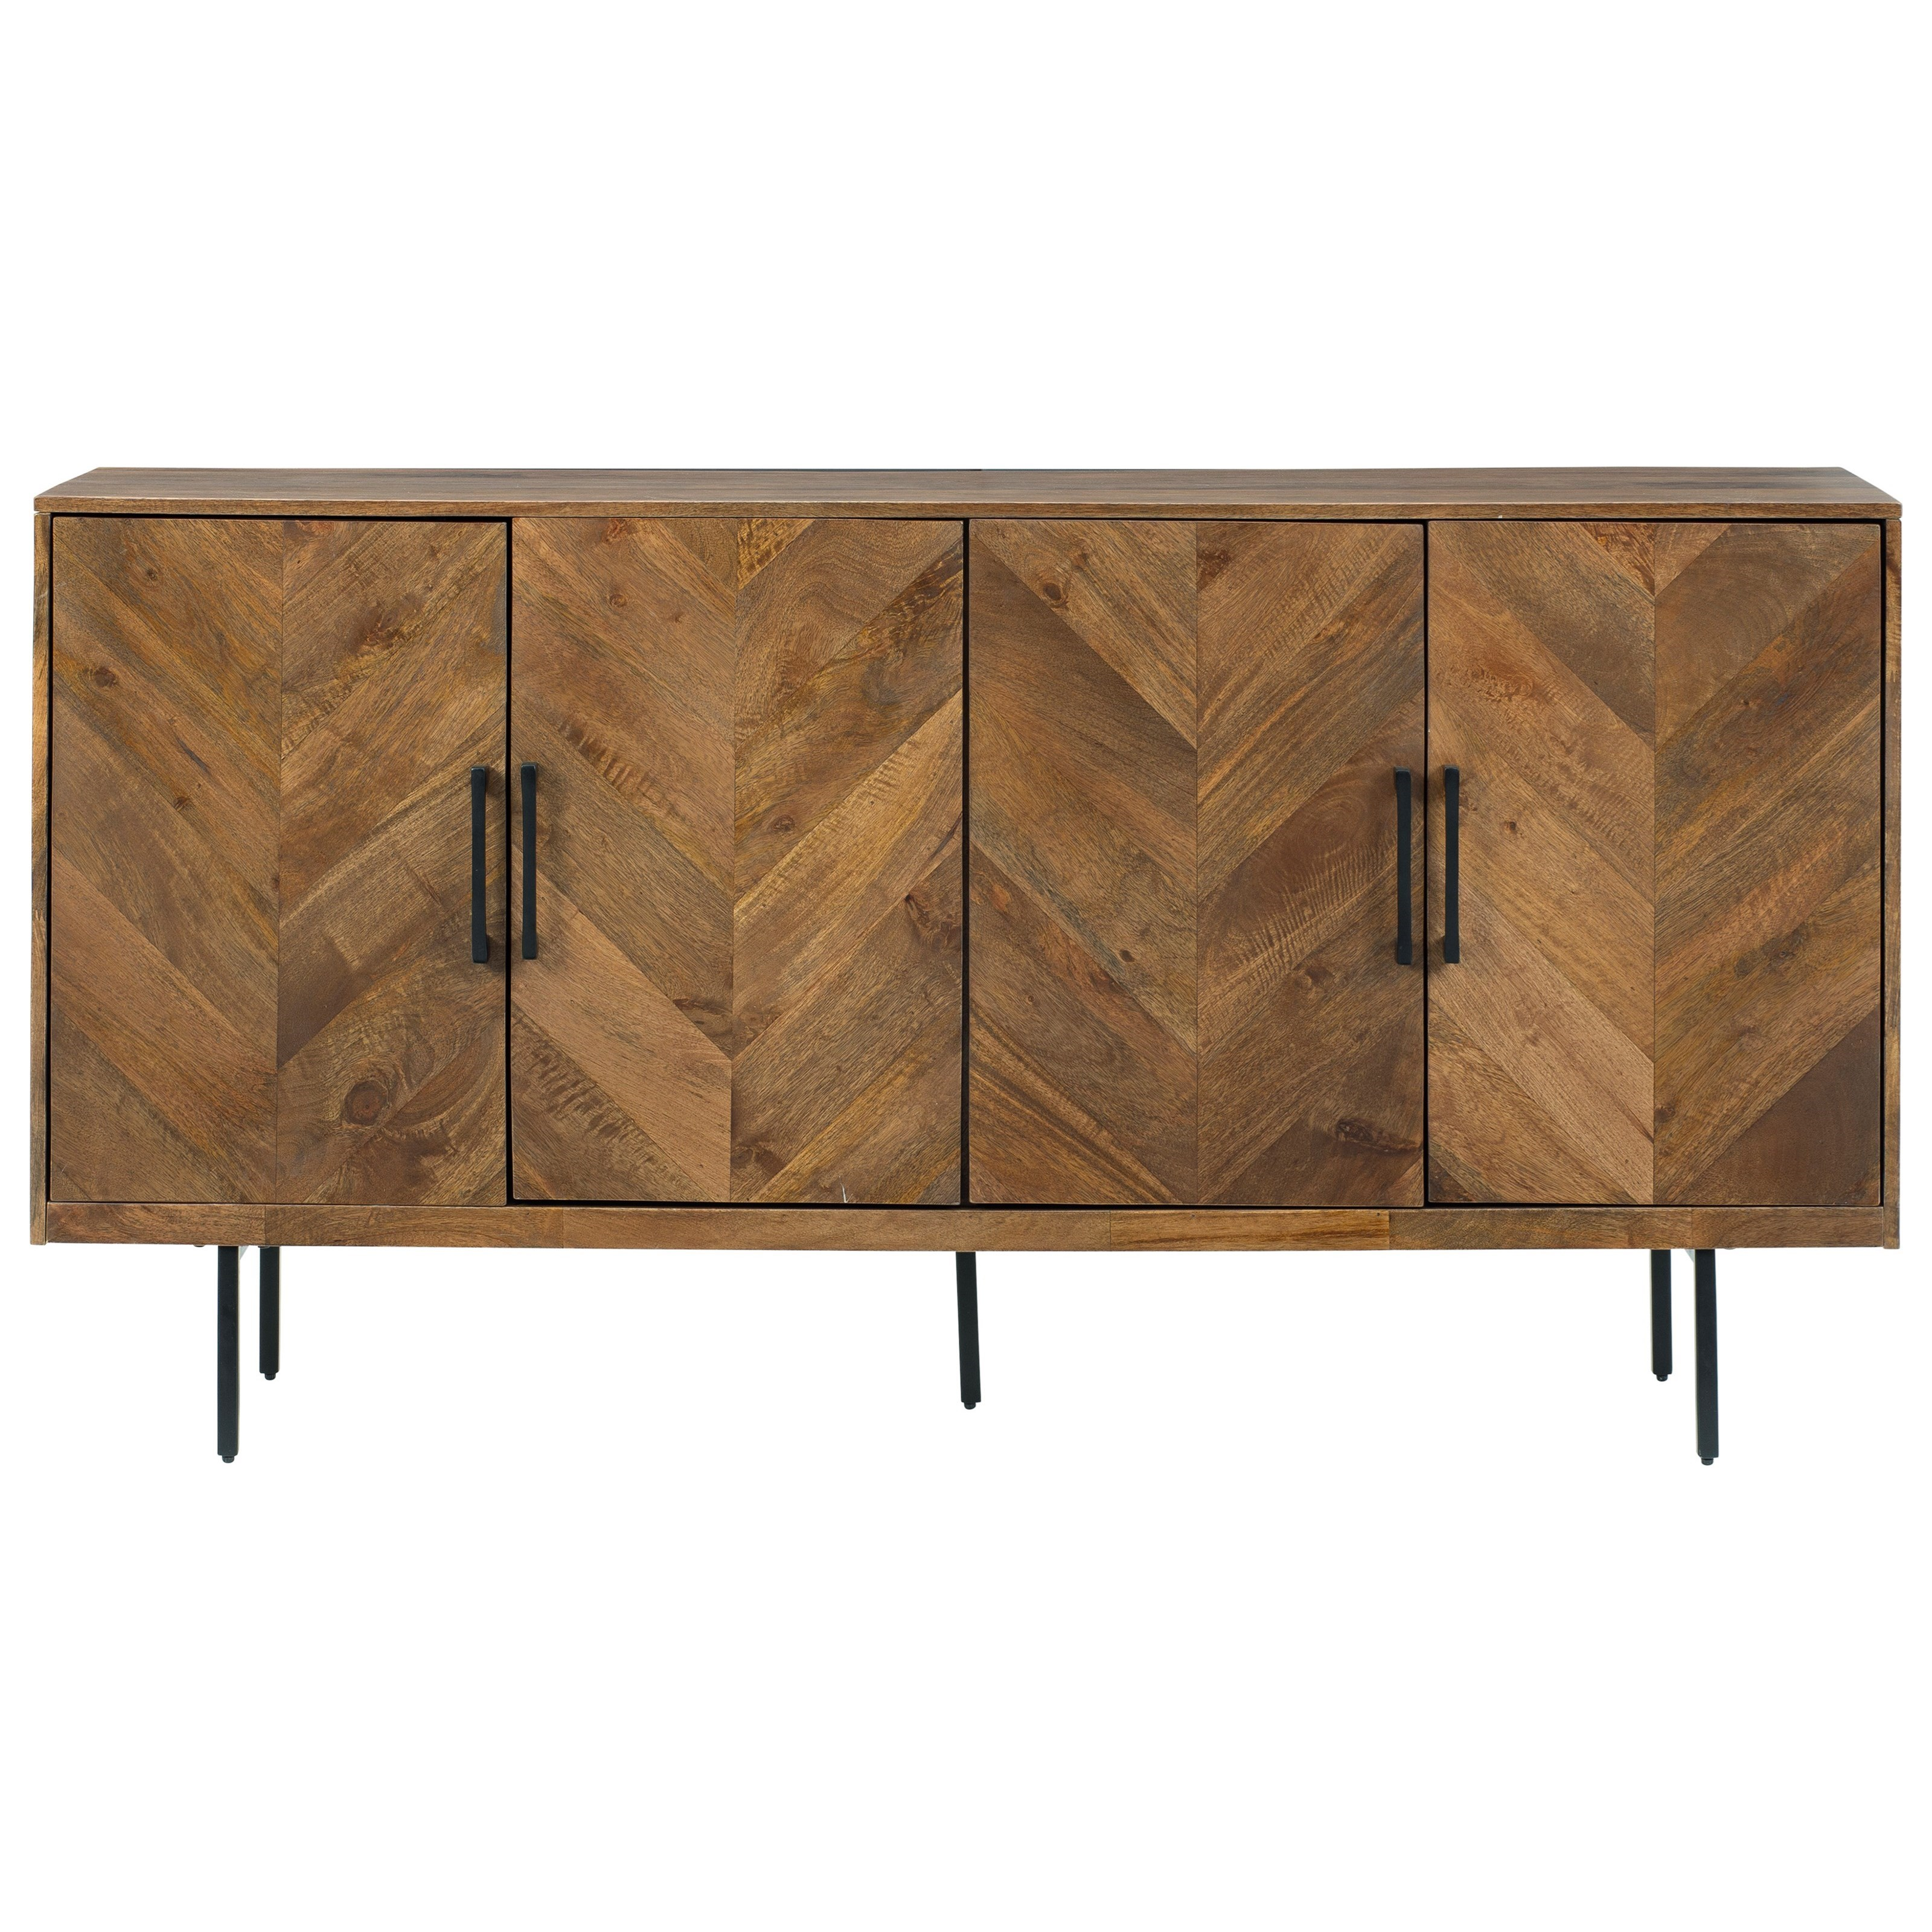 Prattville Accent Cabinet by Signature Design by Ashley at Catalog Outlet